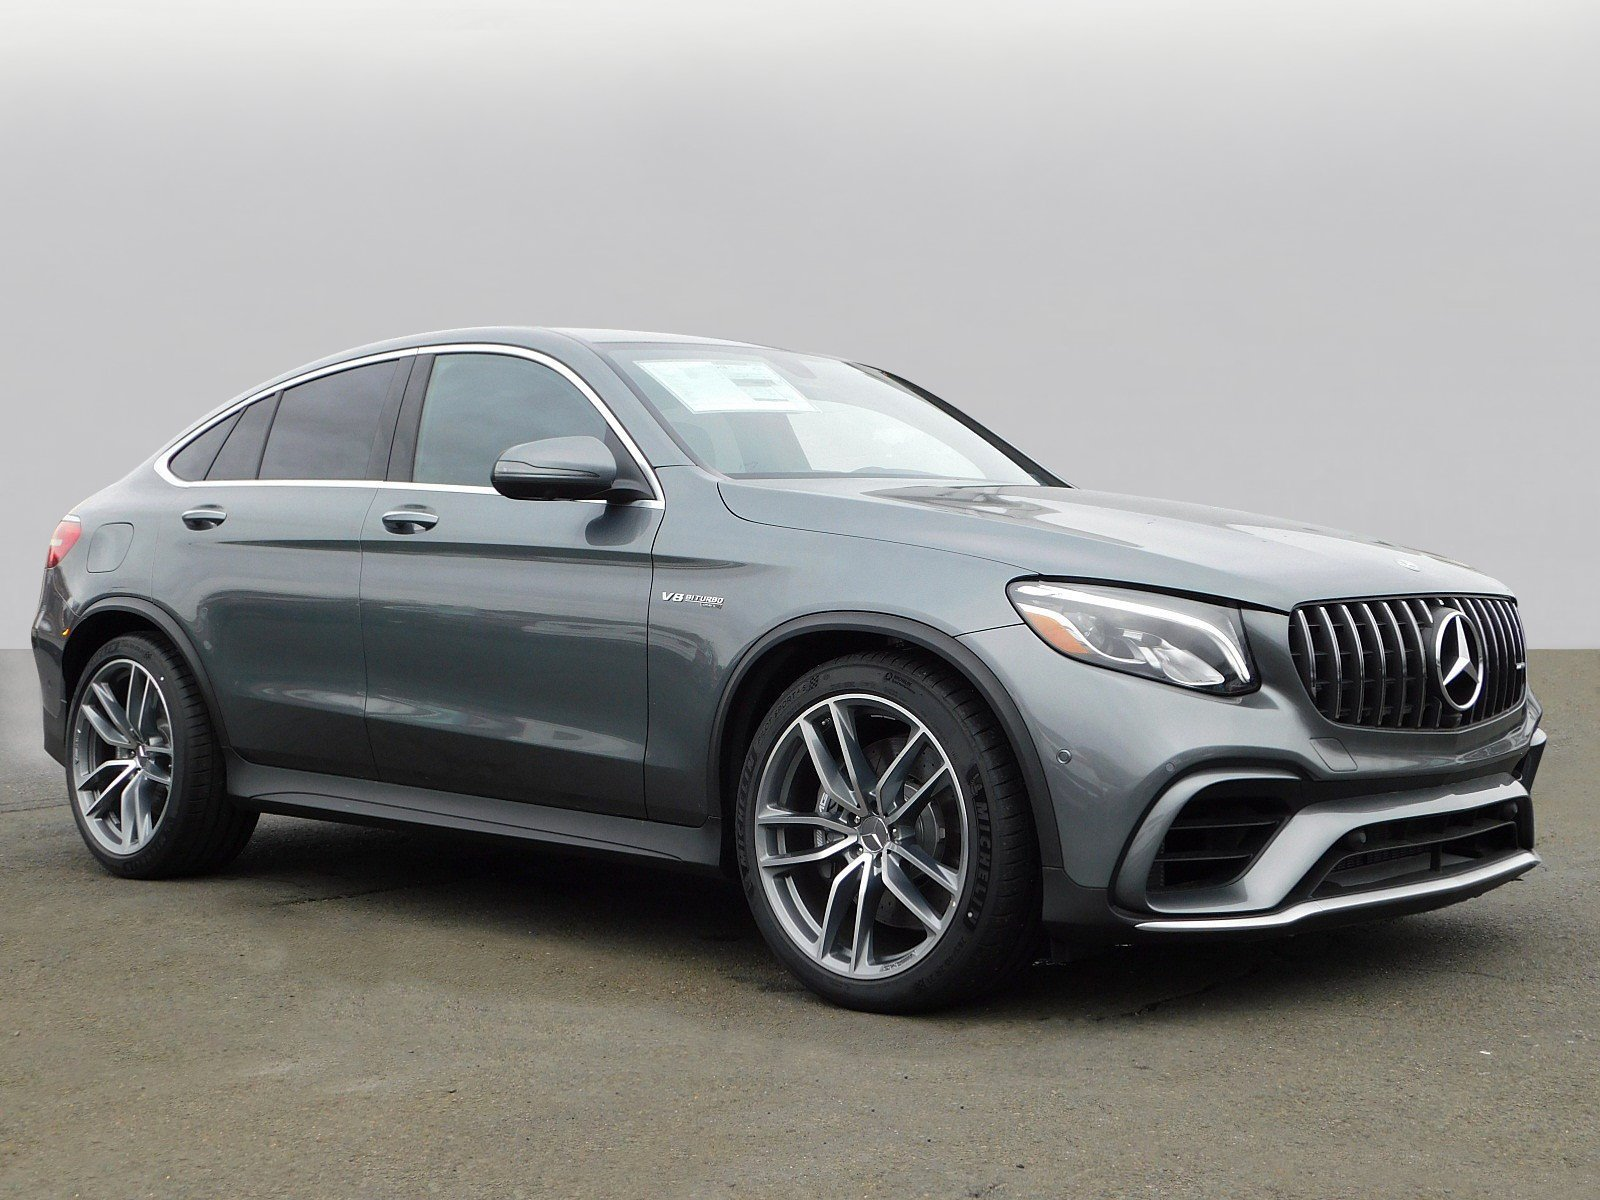 New 2019 Mercedes Benz GLC AMG GLC 63 Coupe